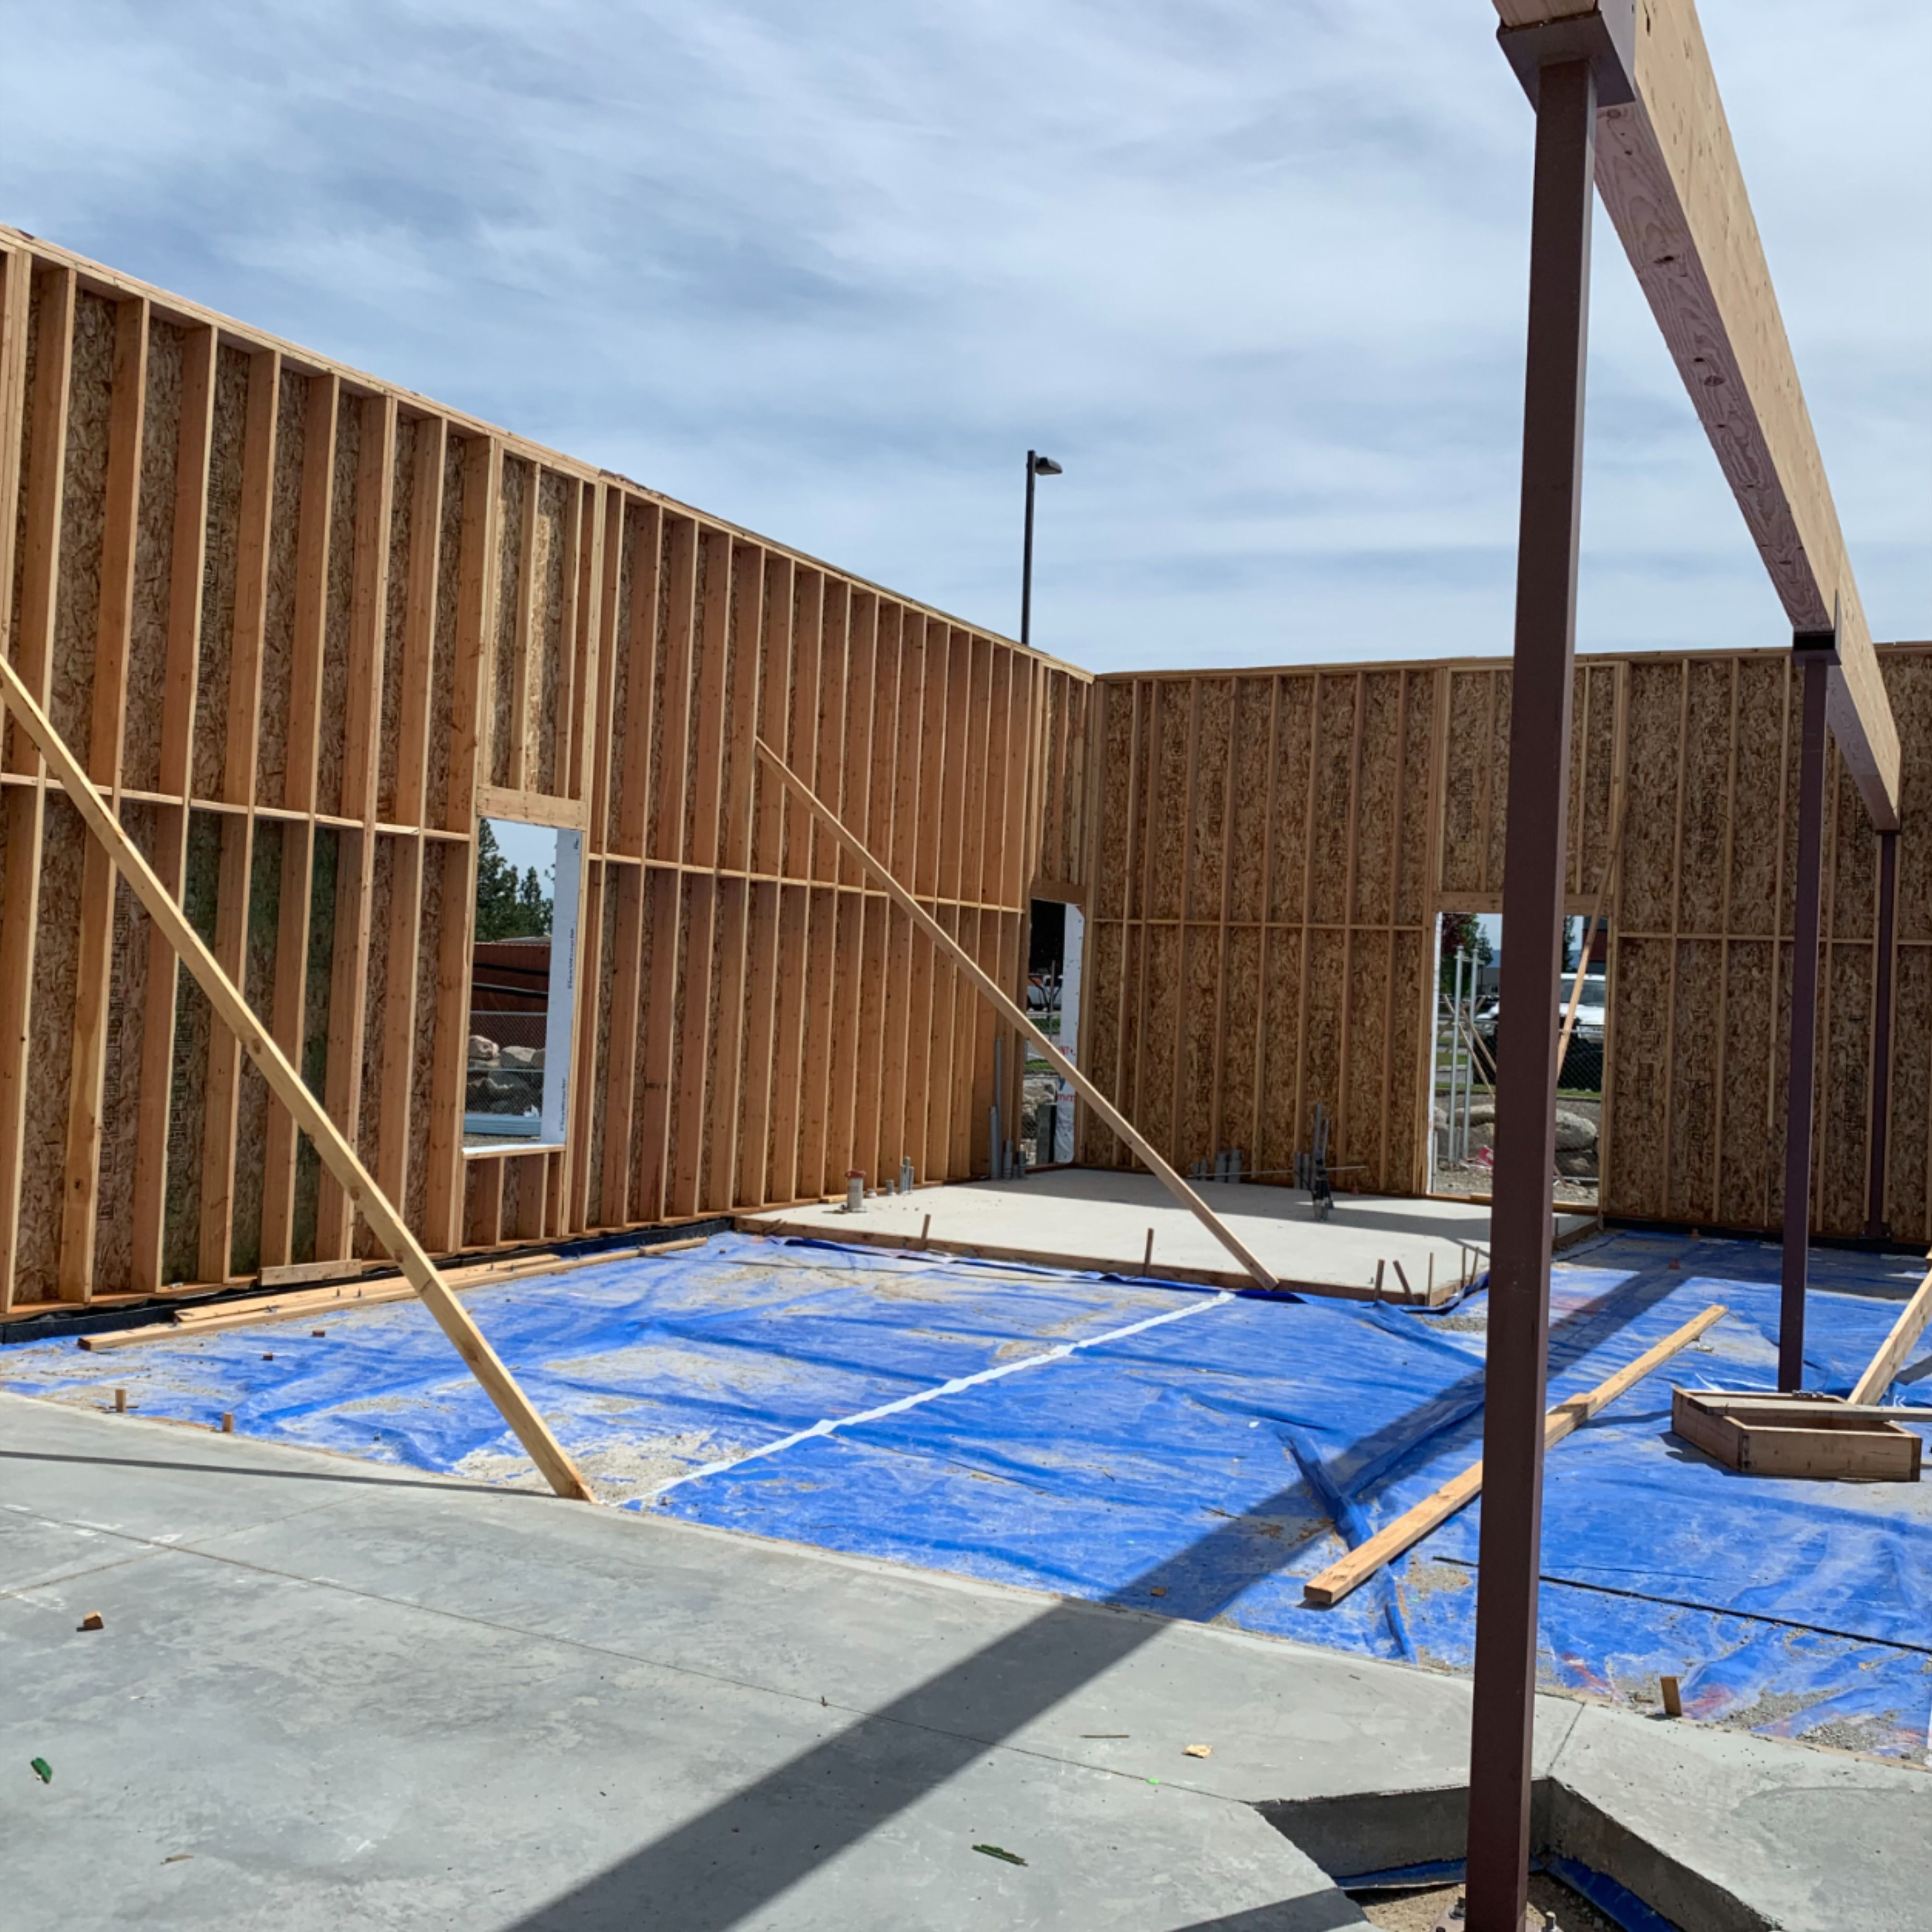 #WorksiteWednesday Meridian Construction crews are busy at the Vivacity Care Center site on Indiana in Spokane Valley. They just wrapped up framing walls and setting most of the roof trusses, with framers finishing up this week.  #BernardoWills #BernardoWillsArchitects #Northwest #PNW #WA #Spokane #WashingtonState #UpperleftUSA #InlandNorthwest #GreatPNW #framing #architecture #architects #architect #architecturaldesign #architectural #architecturedesign #buildingarchitecture